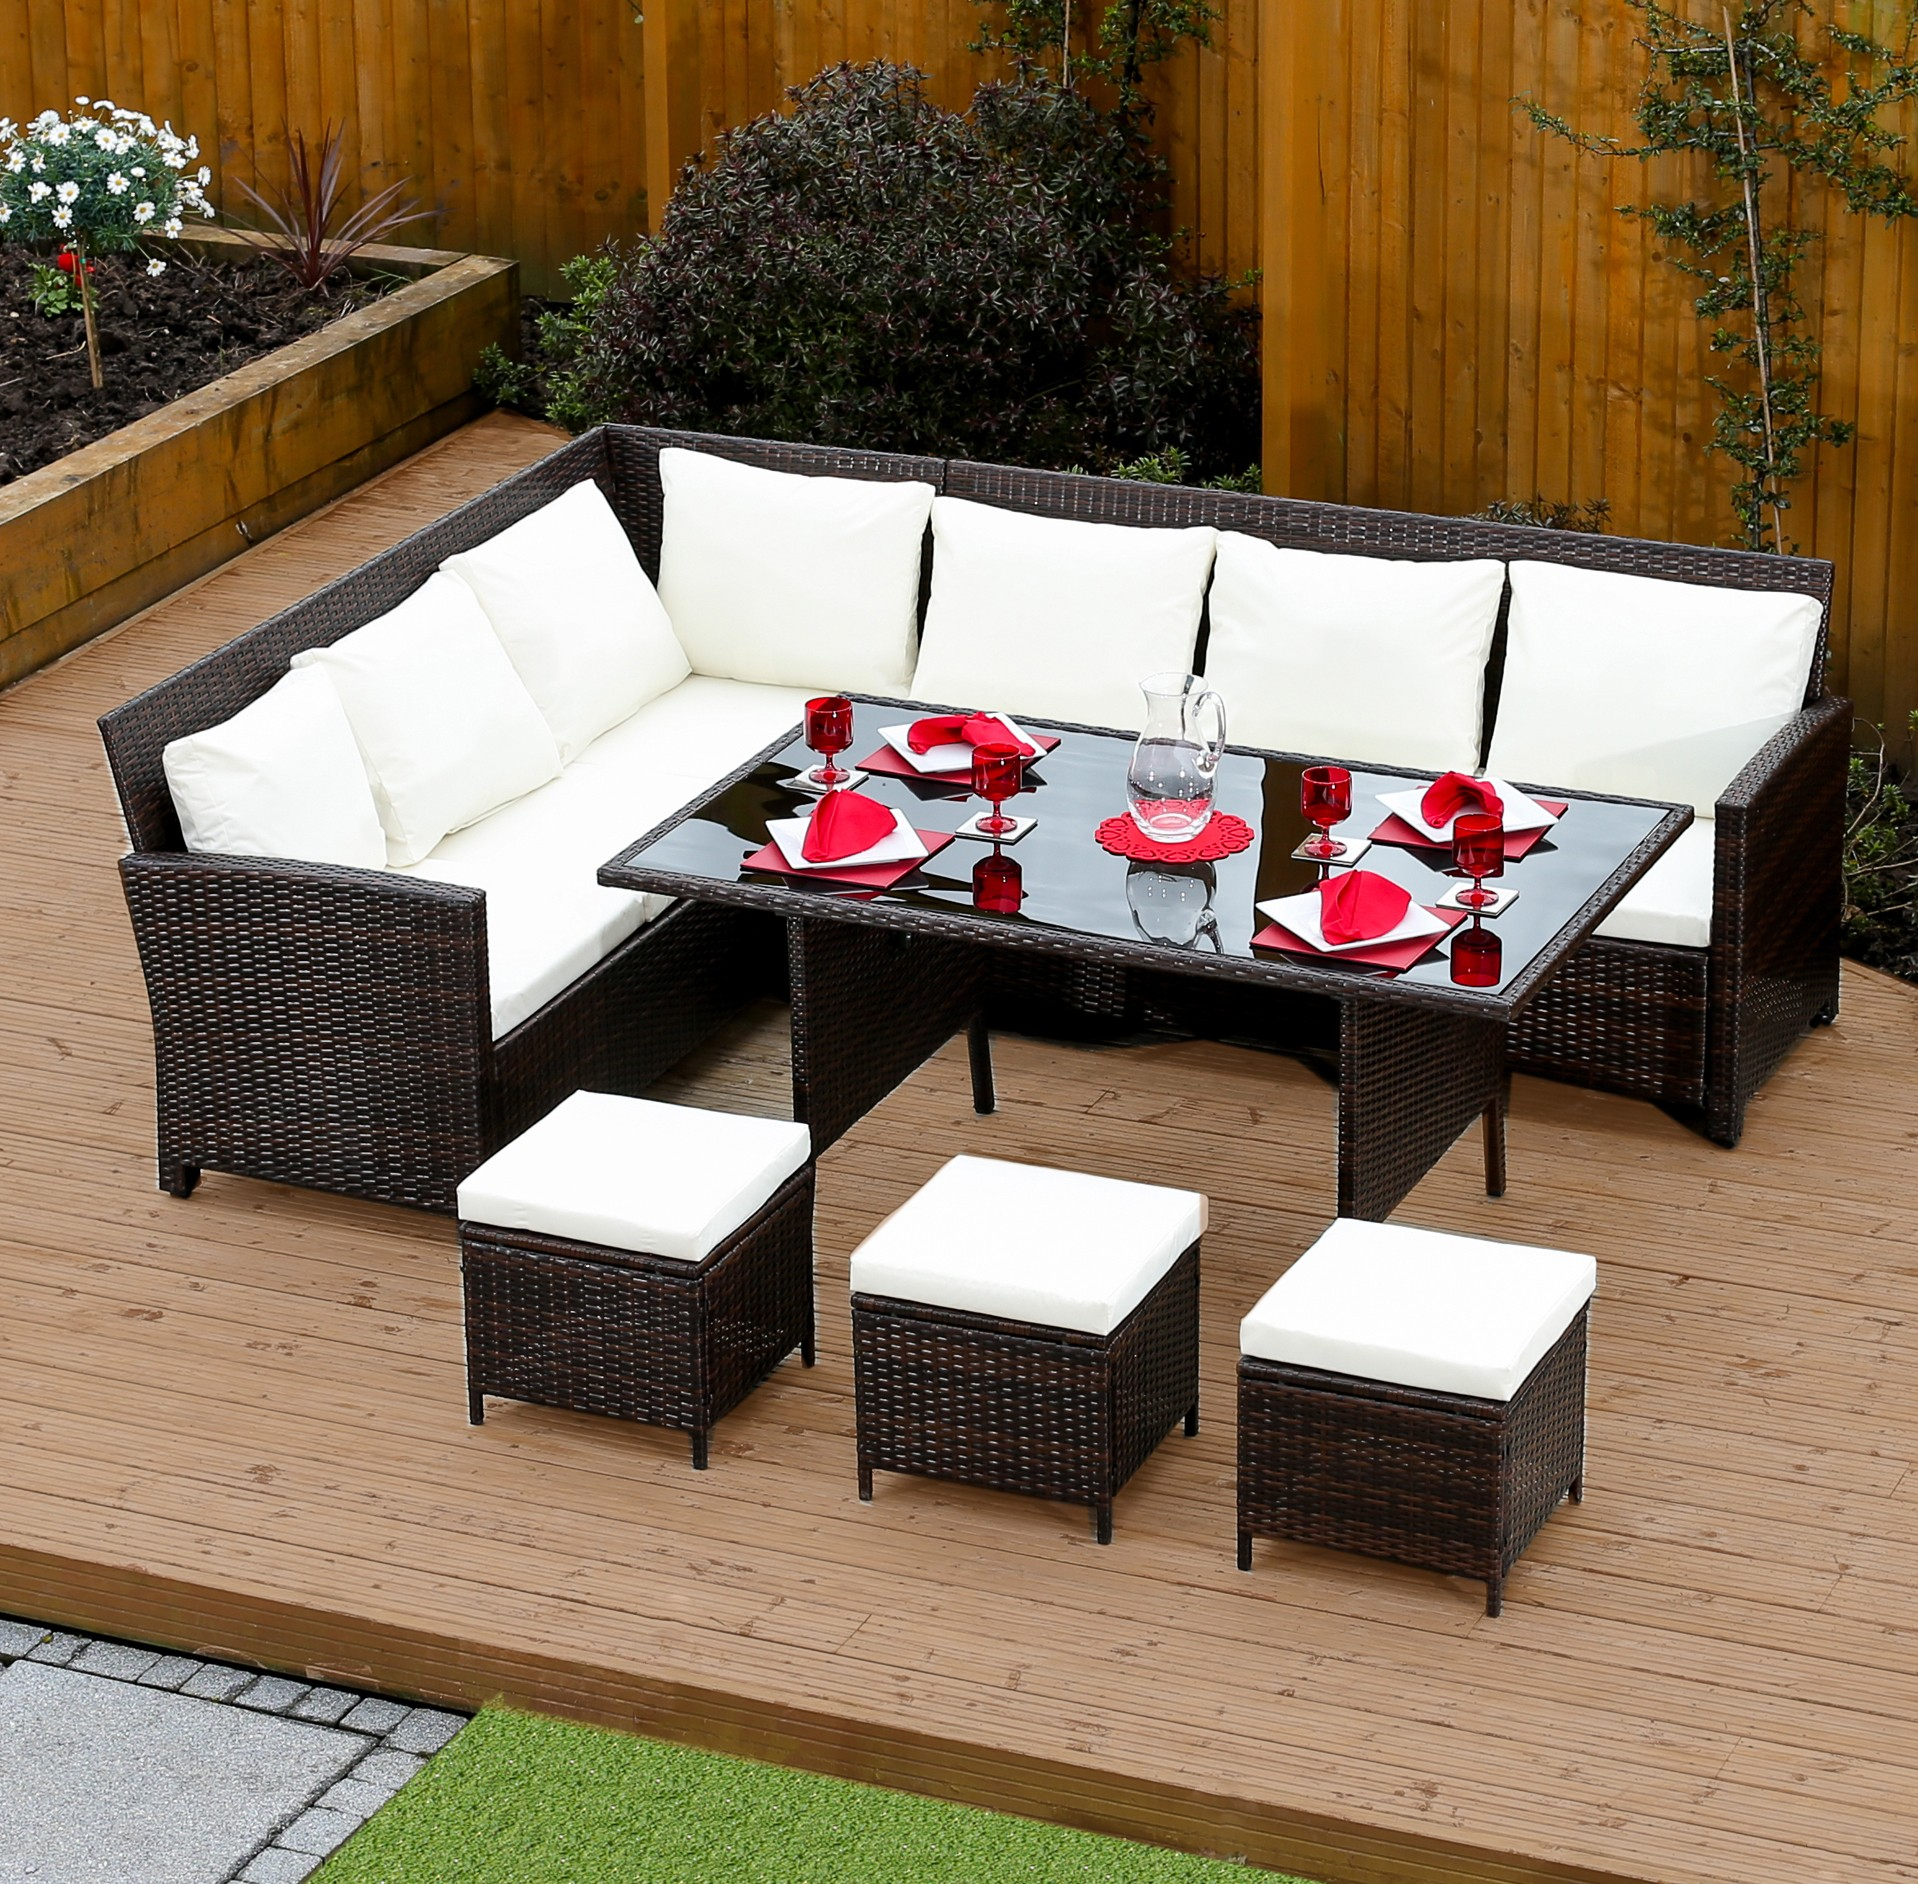 Brown 9 seat rattan corner dining set from abreo abreo for Bamboo furniture uk